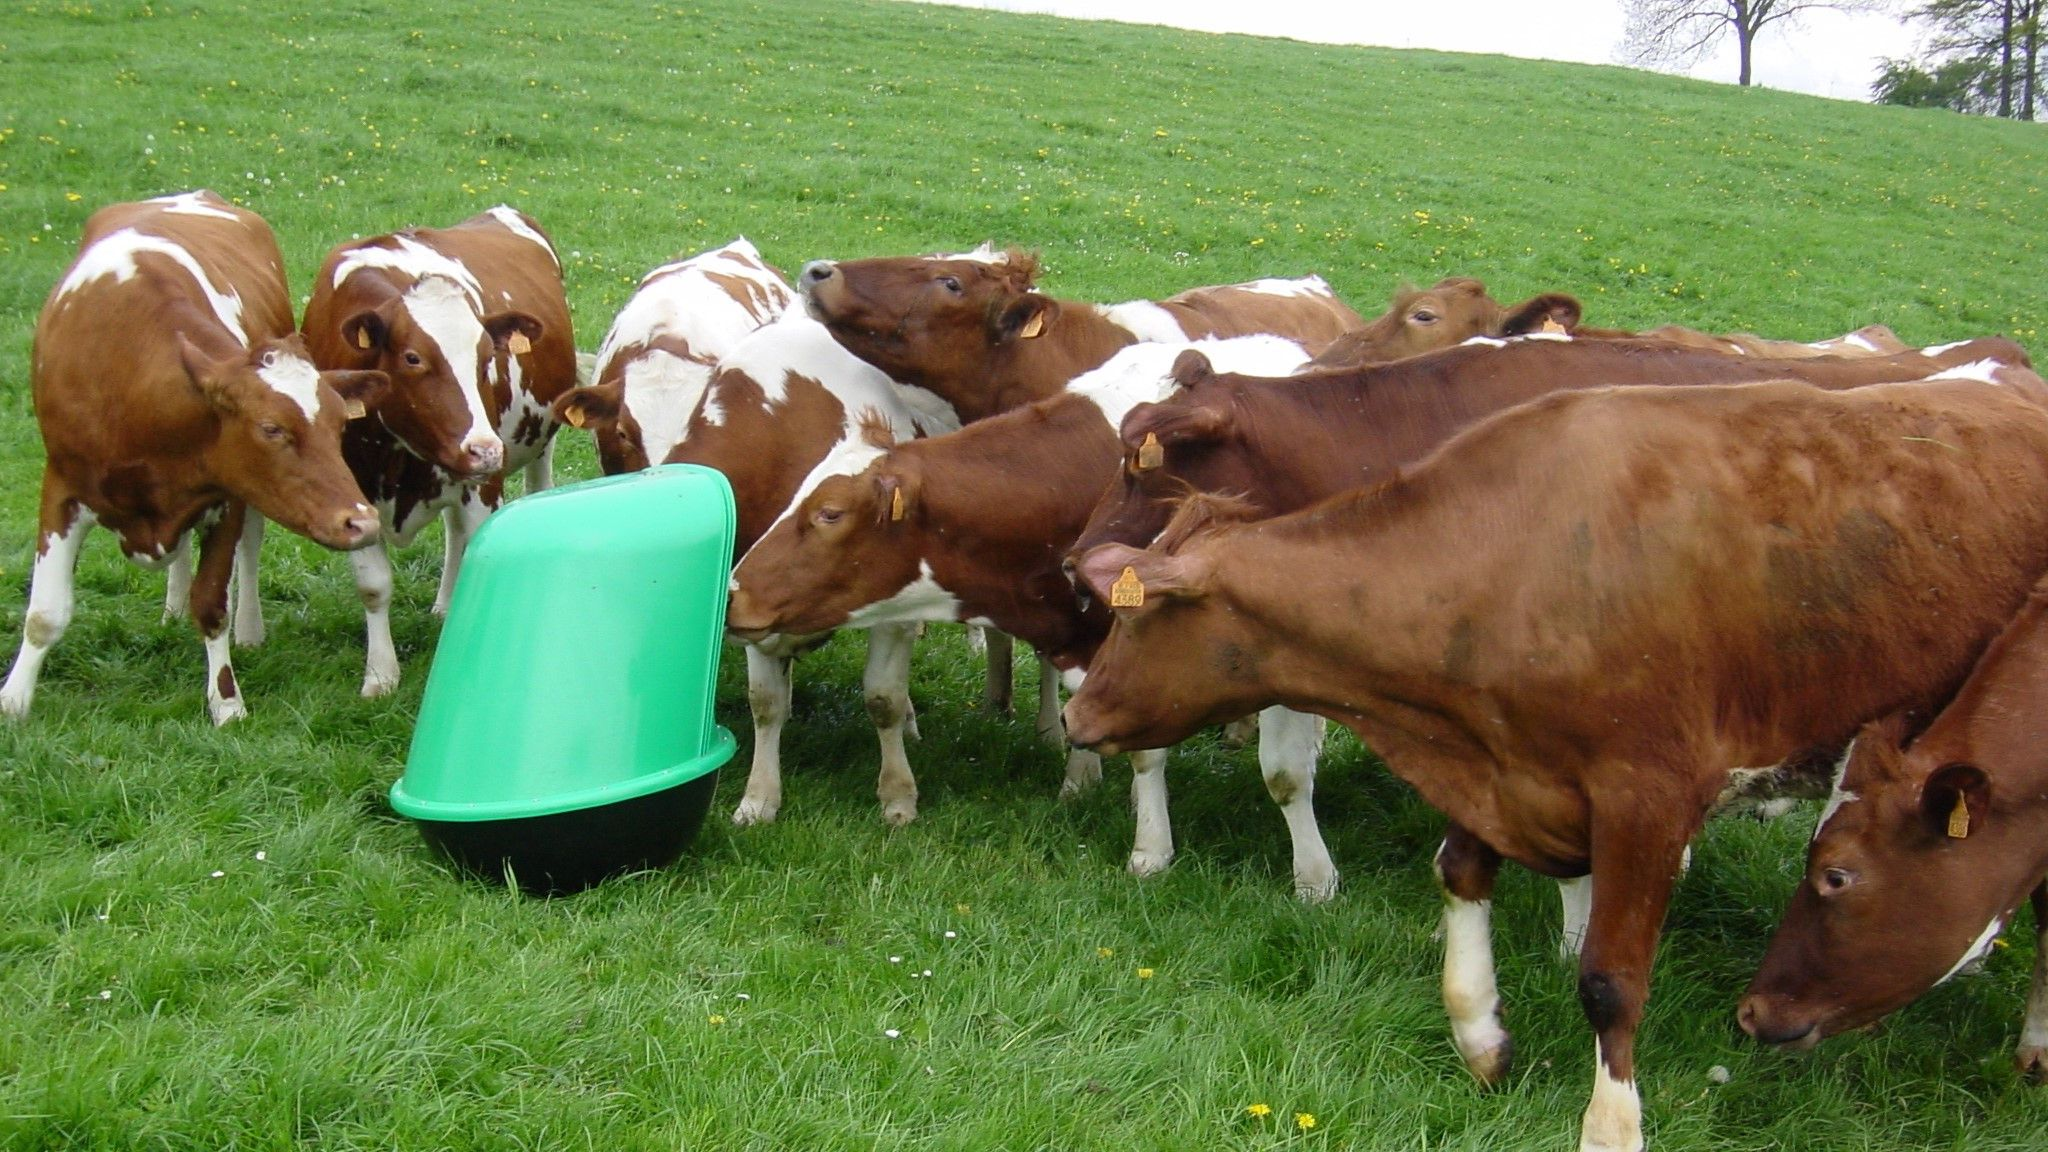 5 Cow Wallpapers Farm Animals Grazing With Mineralrocker1